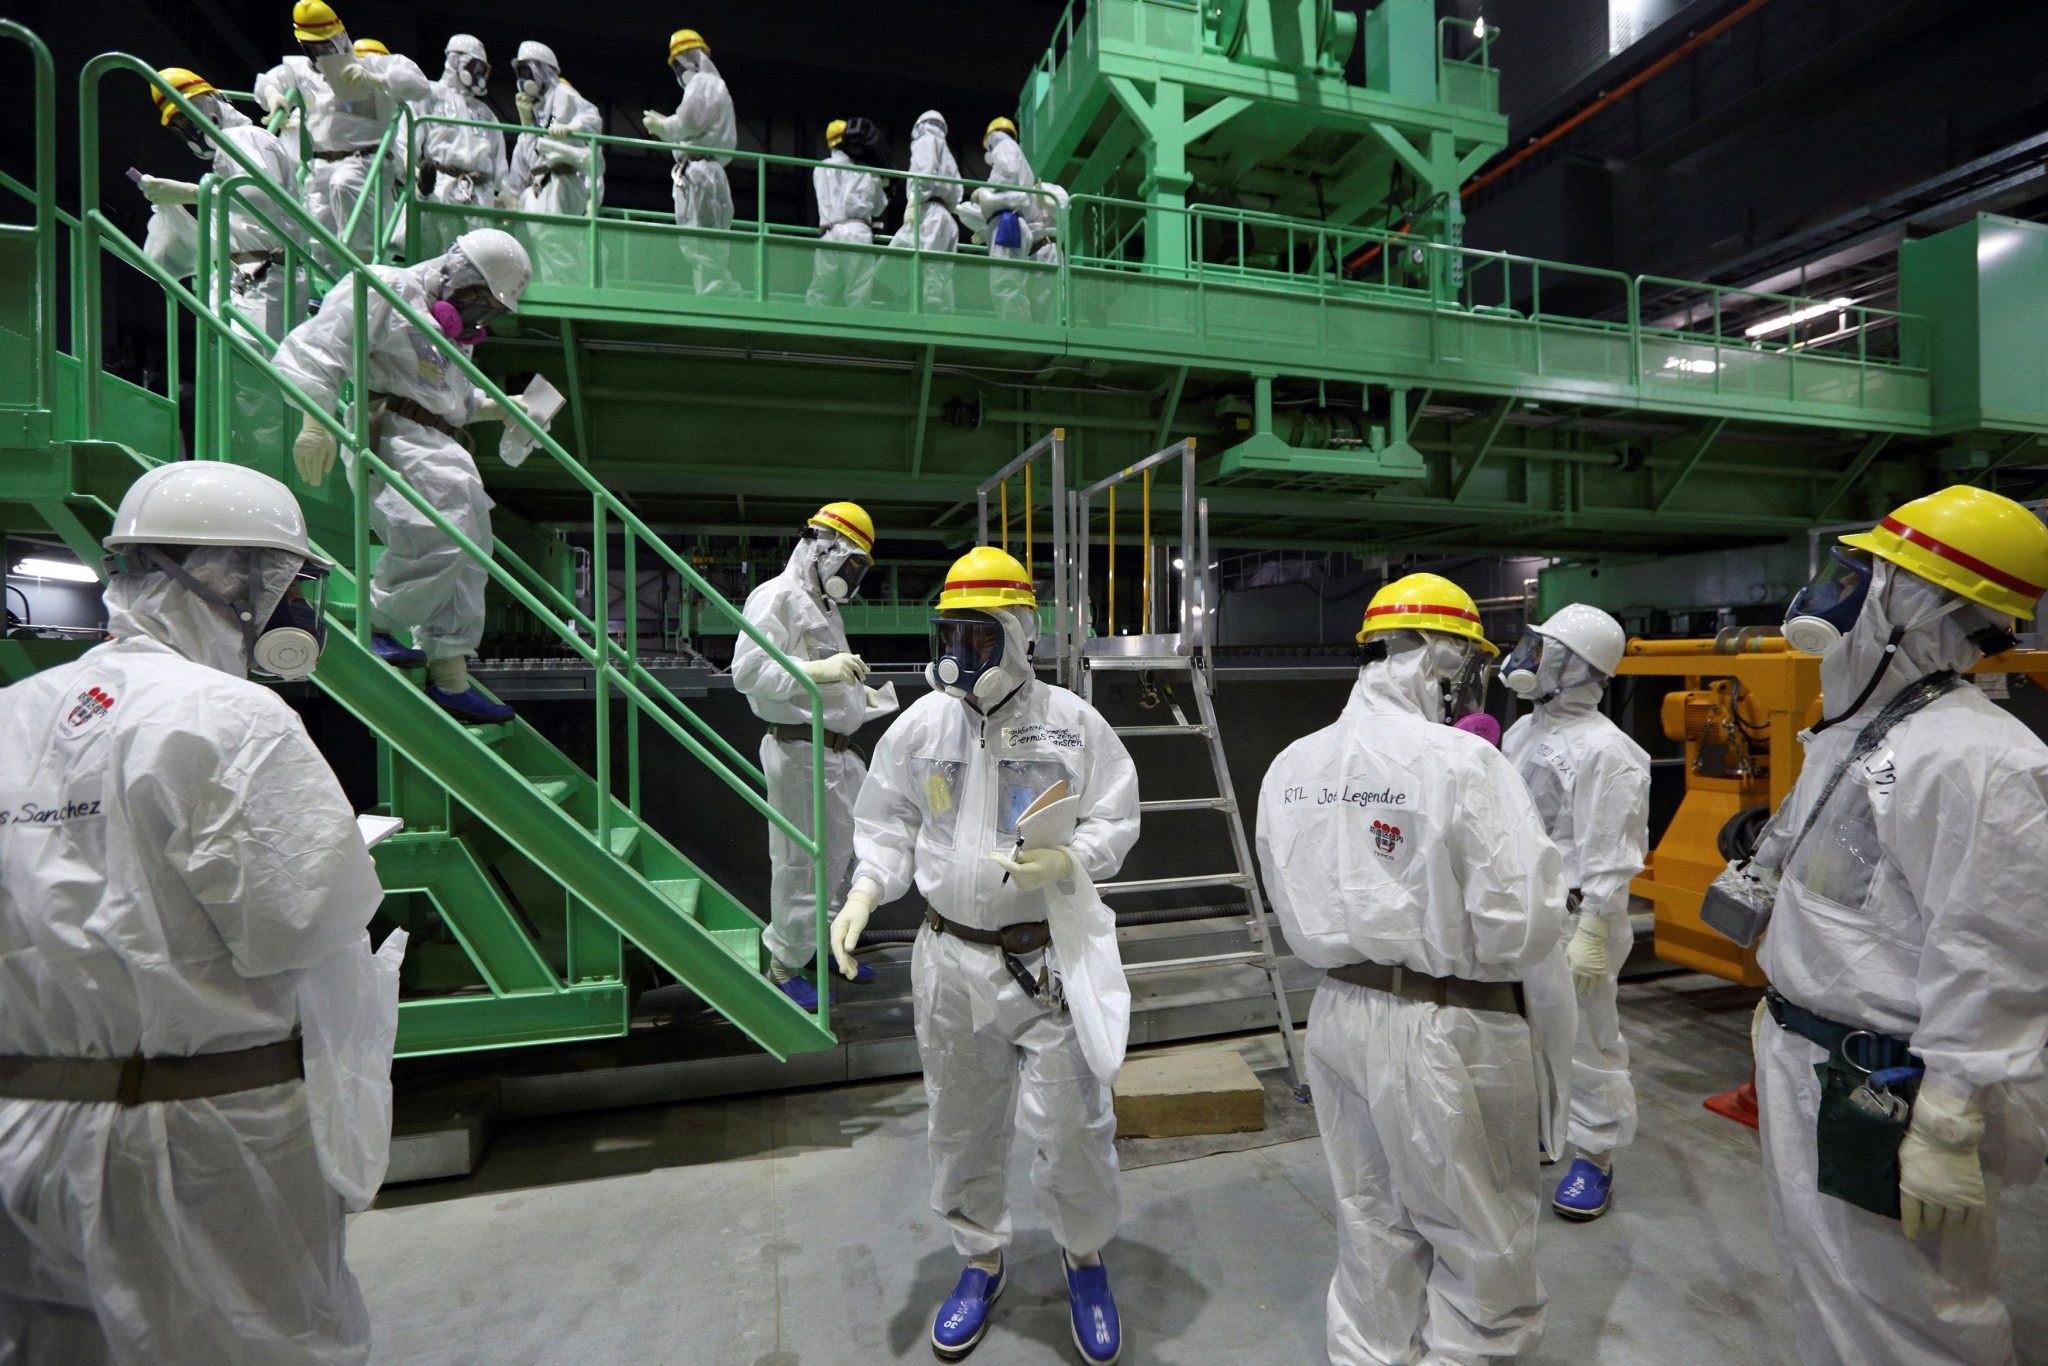 Waning support for nuclear power 10 years after Fukushima